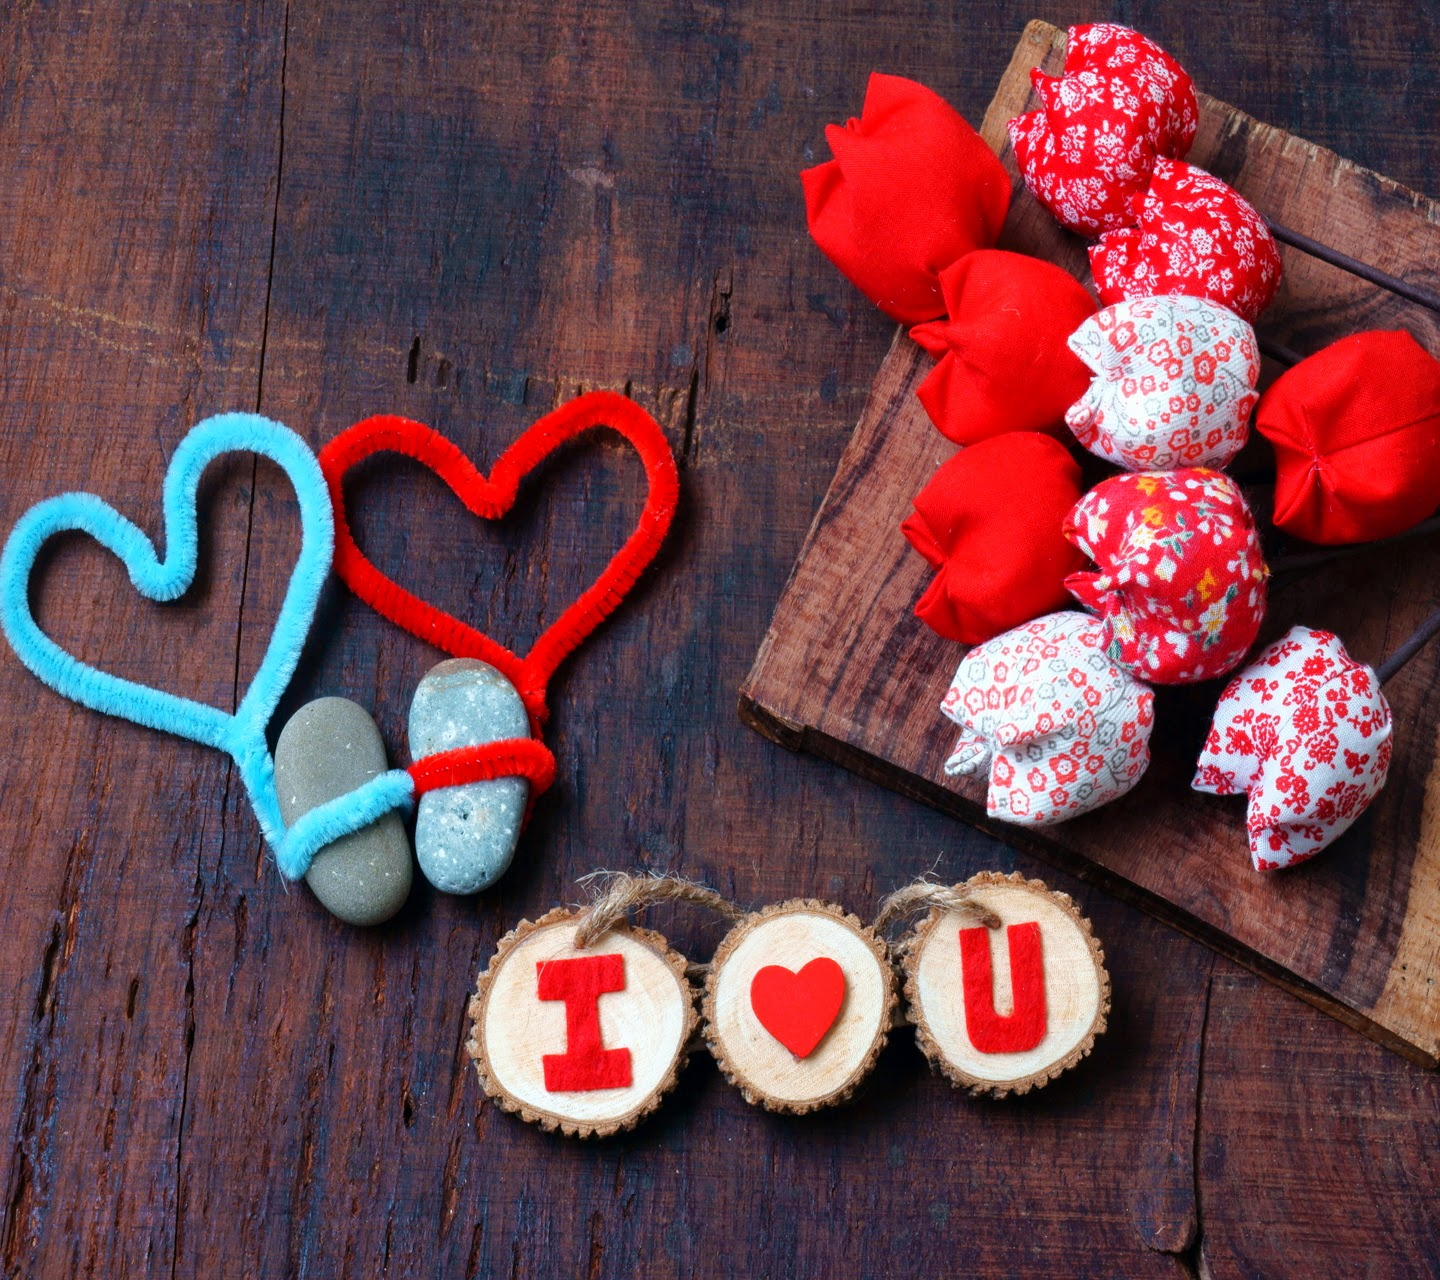 i love you too images